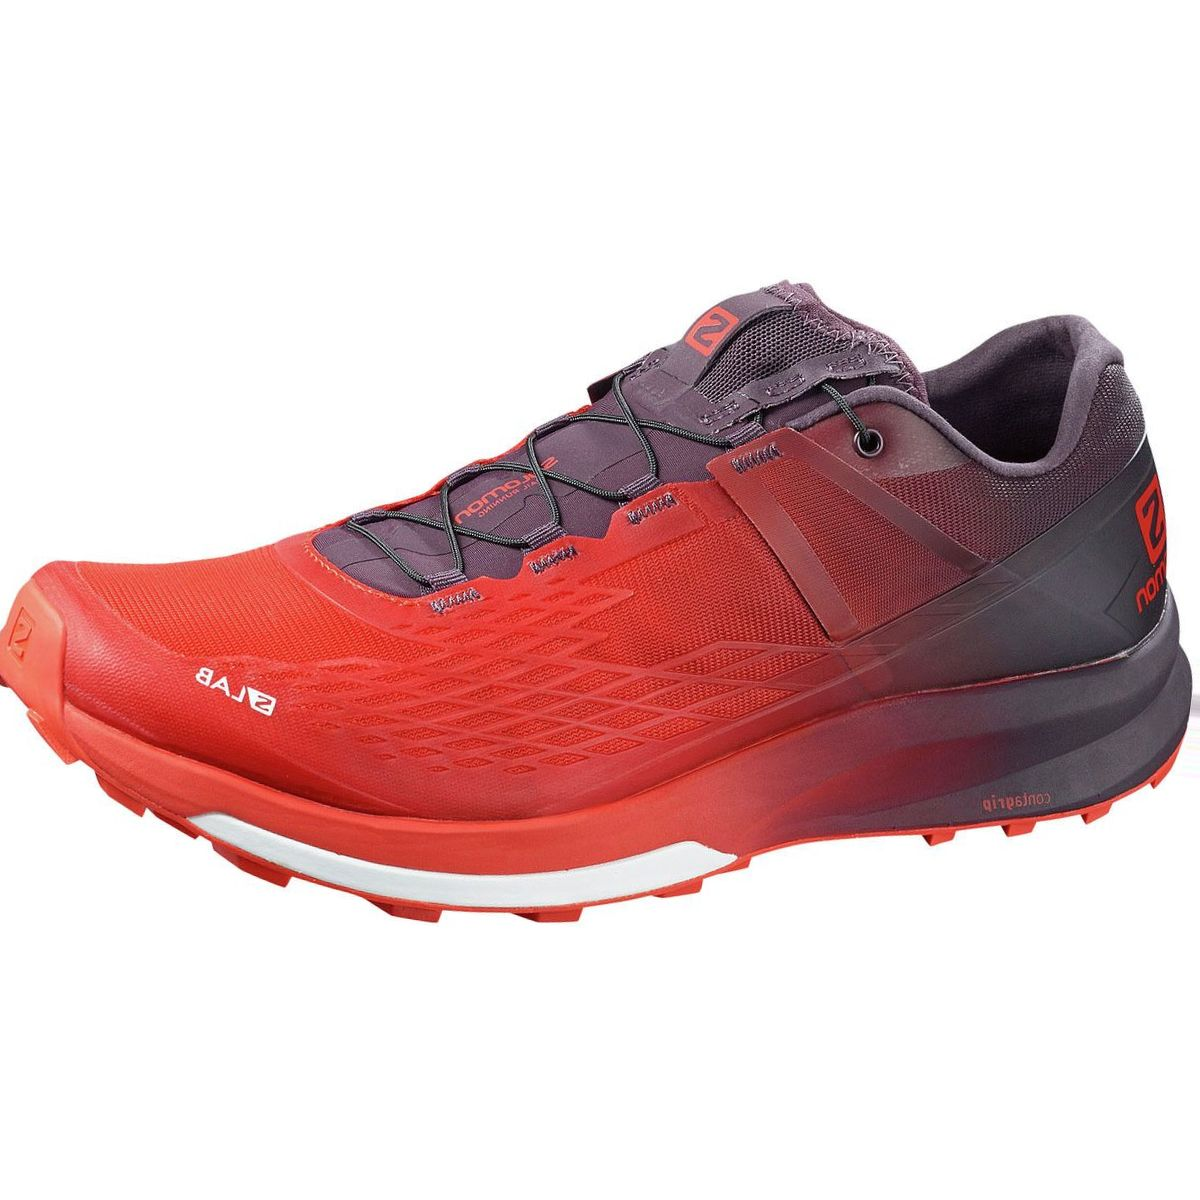 Salomon S-Lab Ultra 2 Trail Running Shoe - Men's